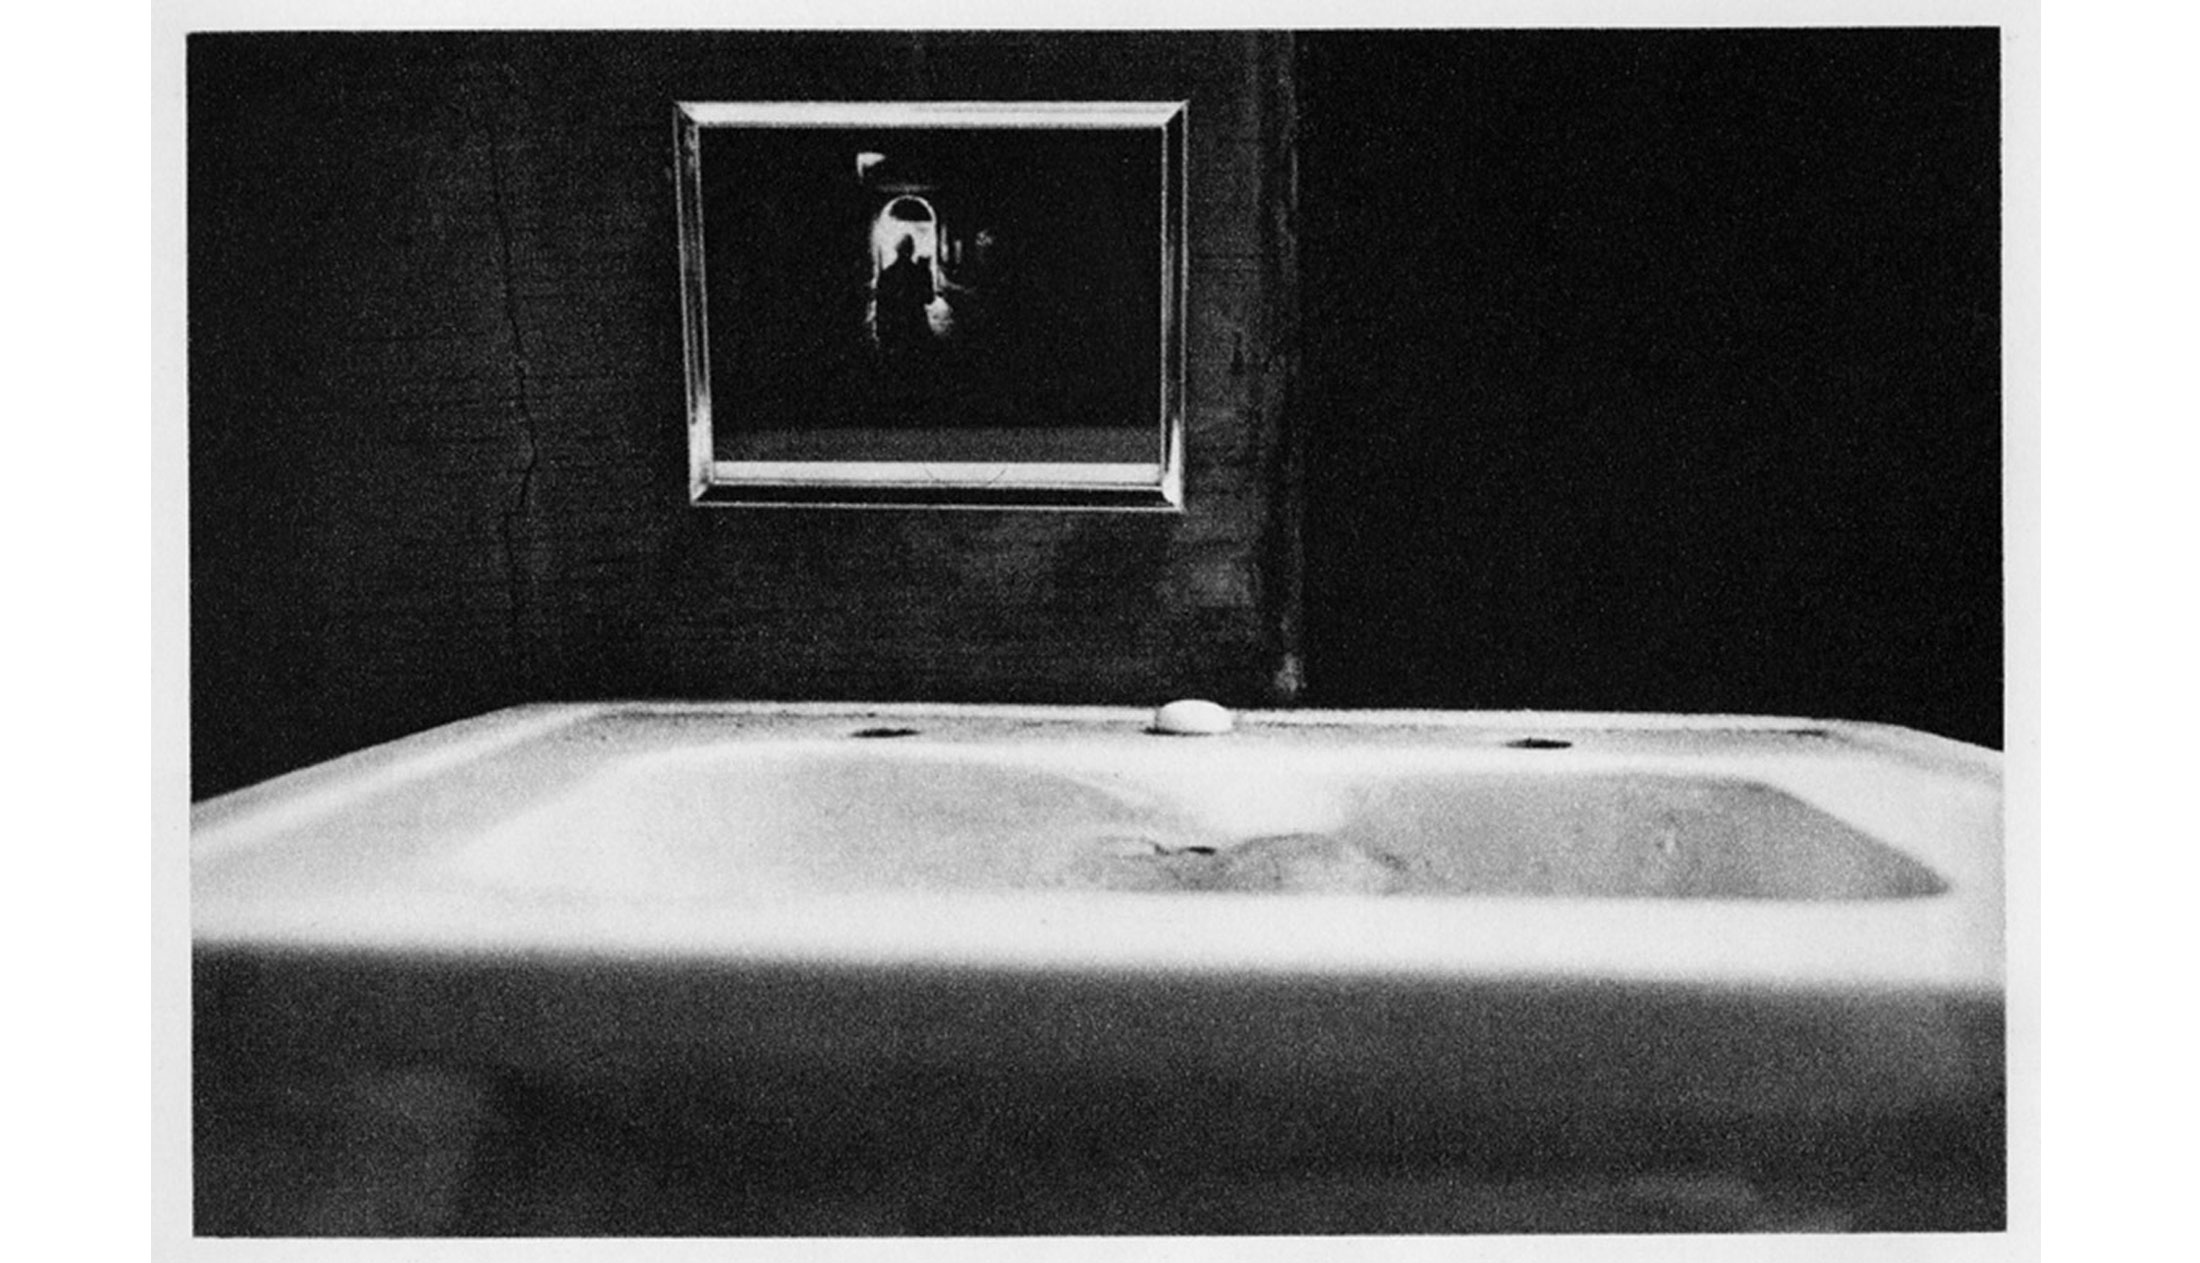 Duane-Michals-Things-are-Queer-Les-choses-sont-bizarres-1973-sequence-photo-08